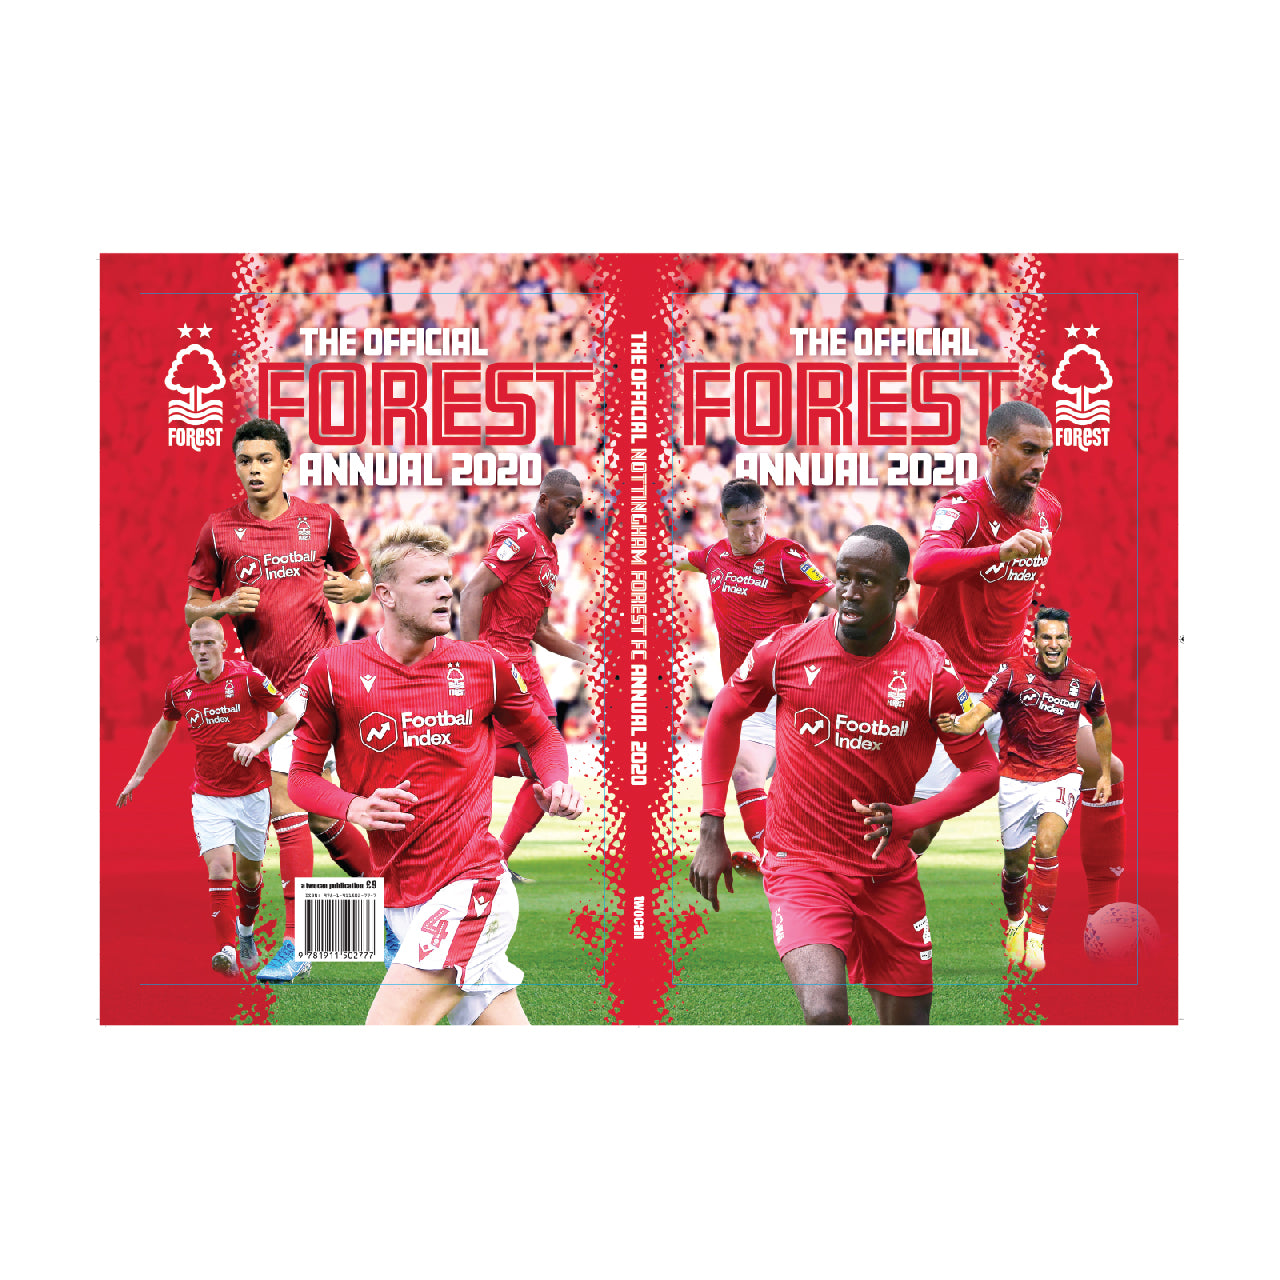 NFFC Annual 2020 - Nottingham Forest